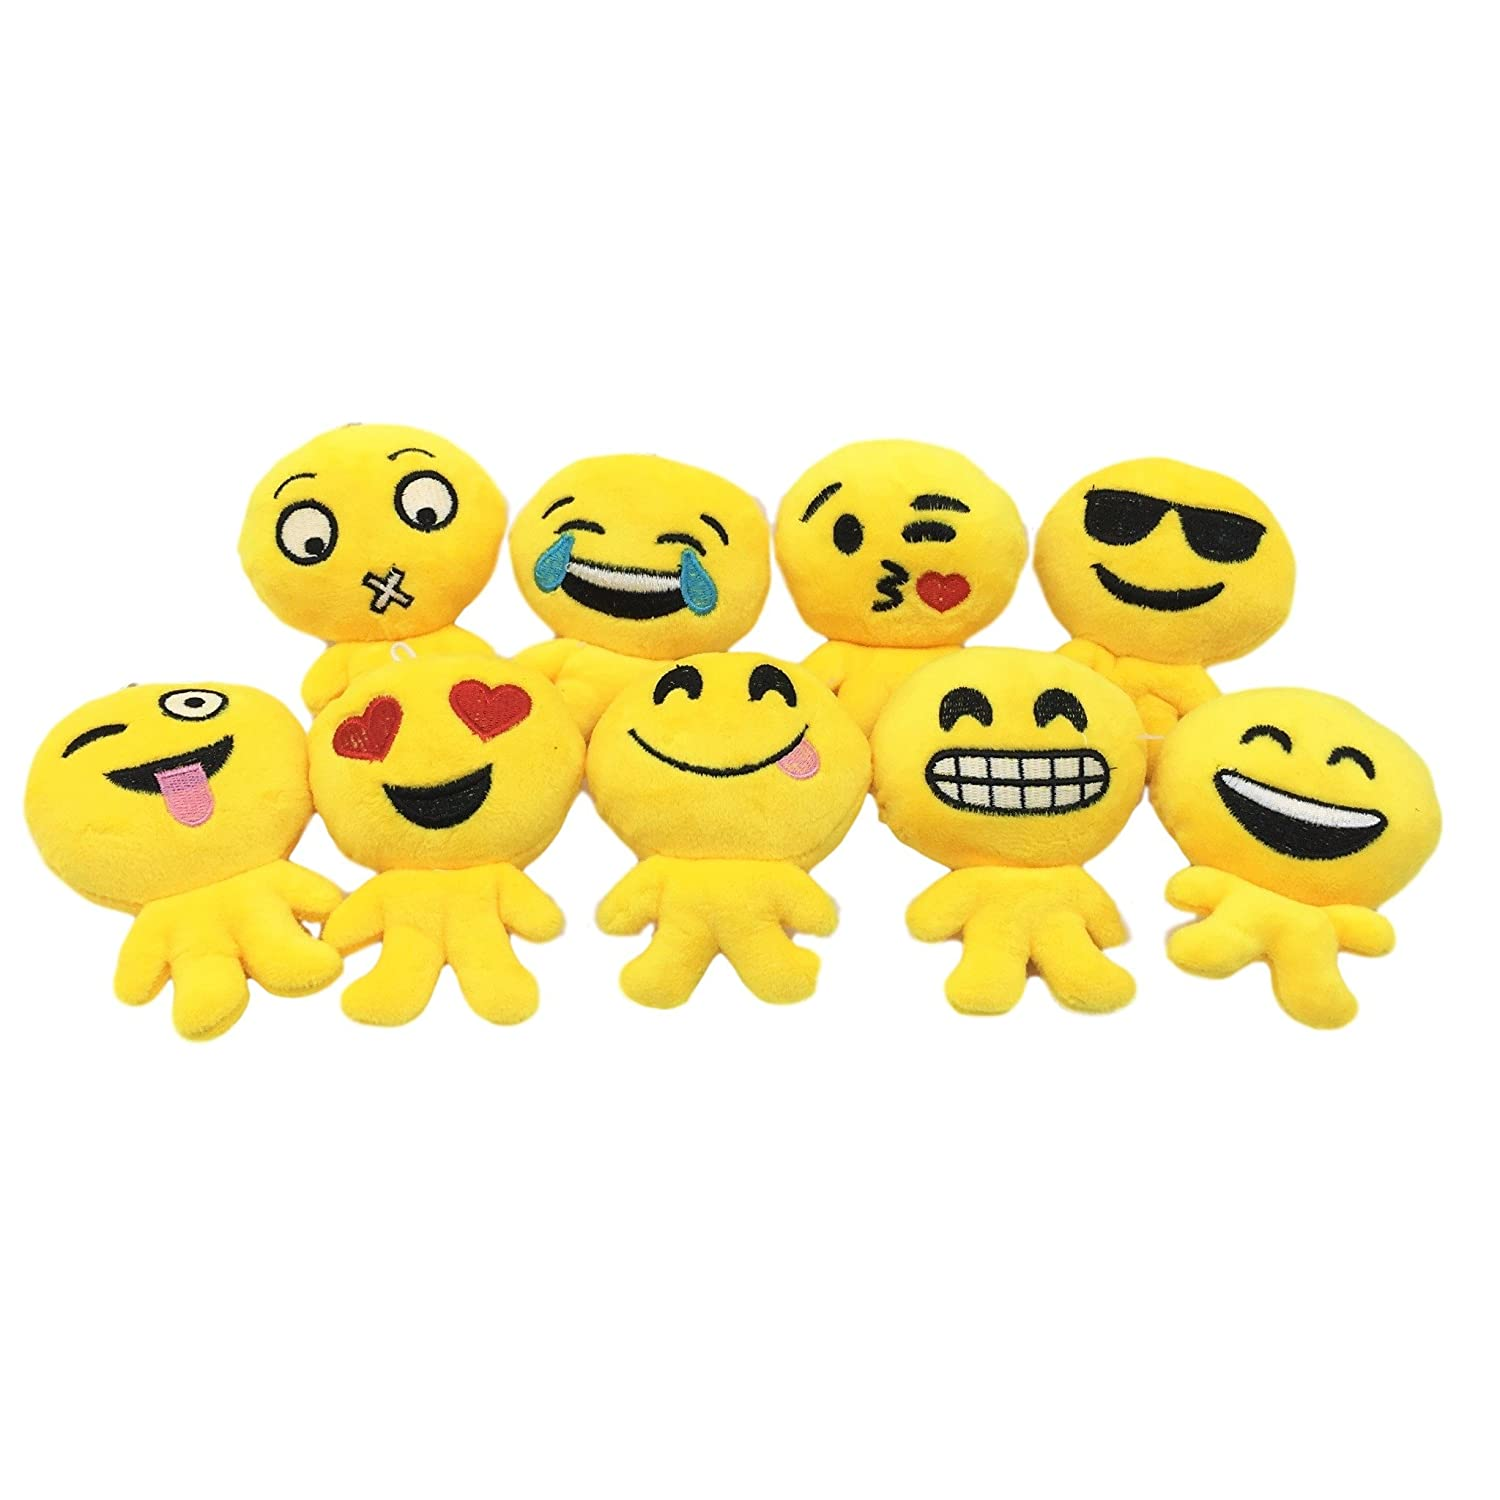 Amazon.com: Qs Emoji 24 Pack Poo face Plush Pillow KeyChain ...